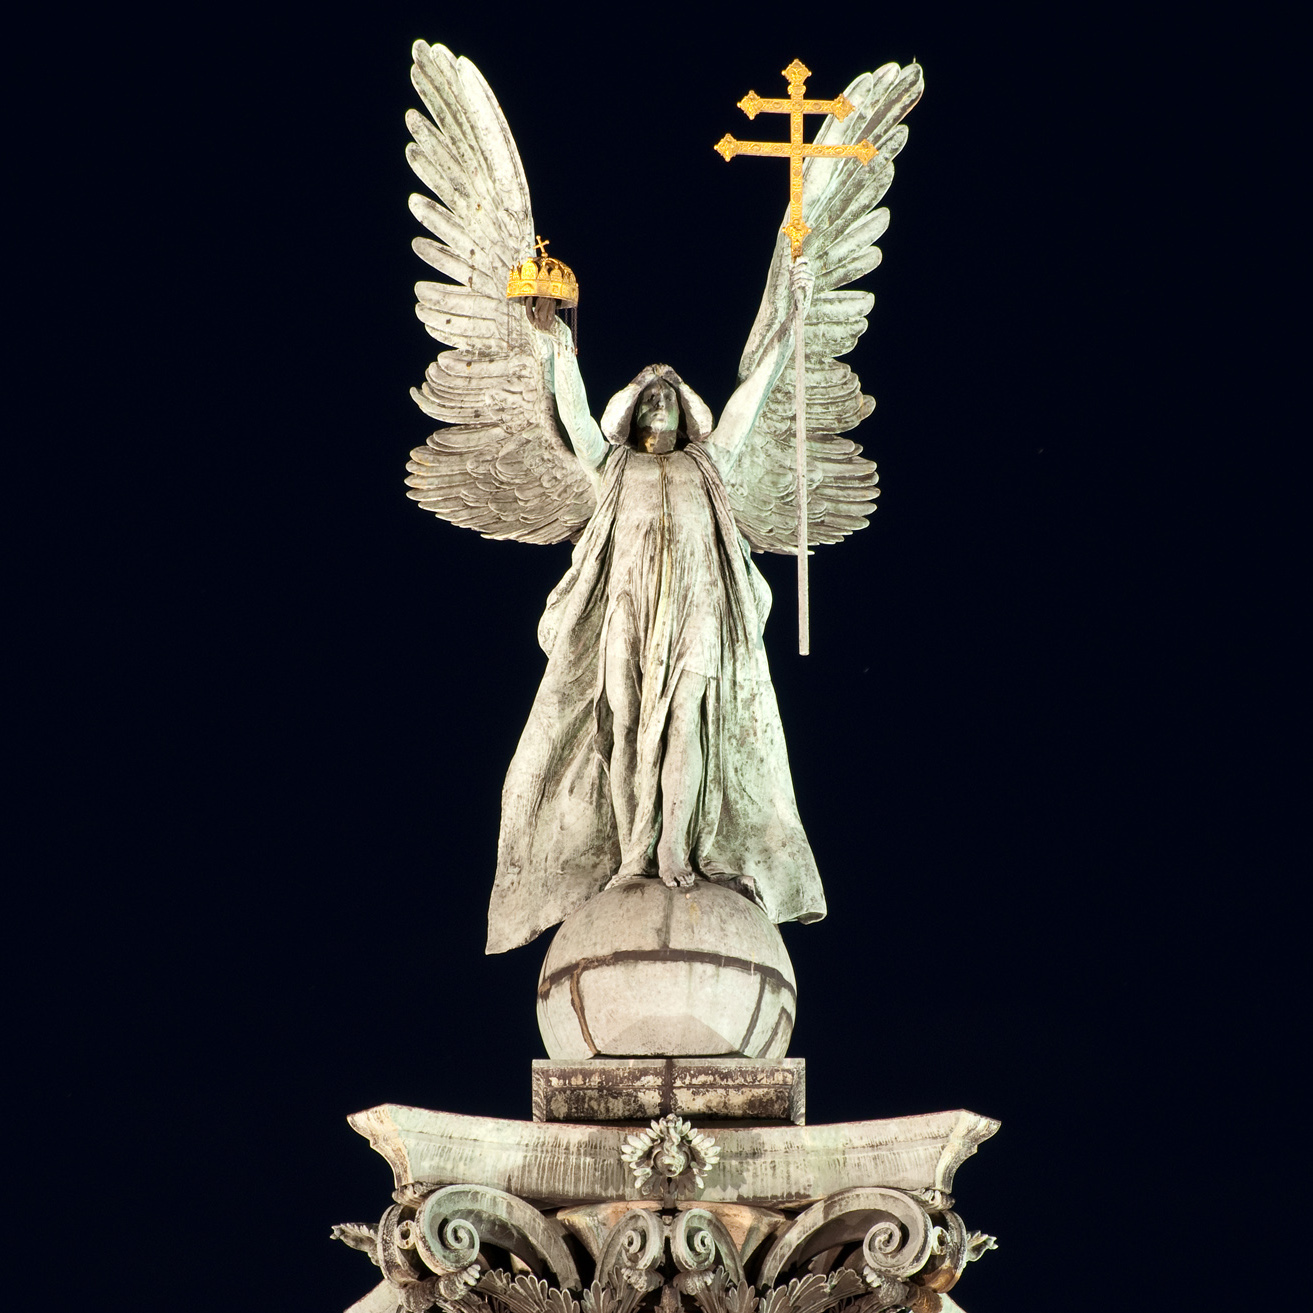 Gabriel_archangel's_statue_by_night